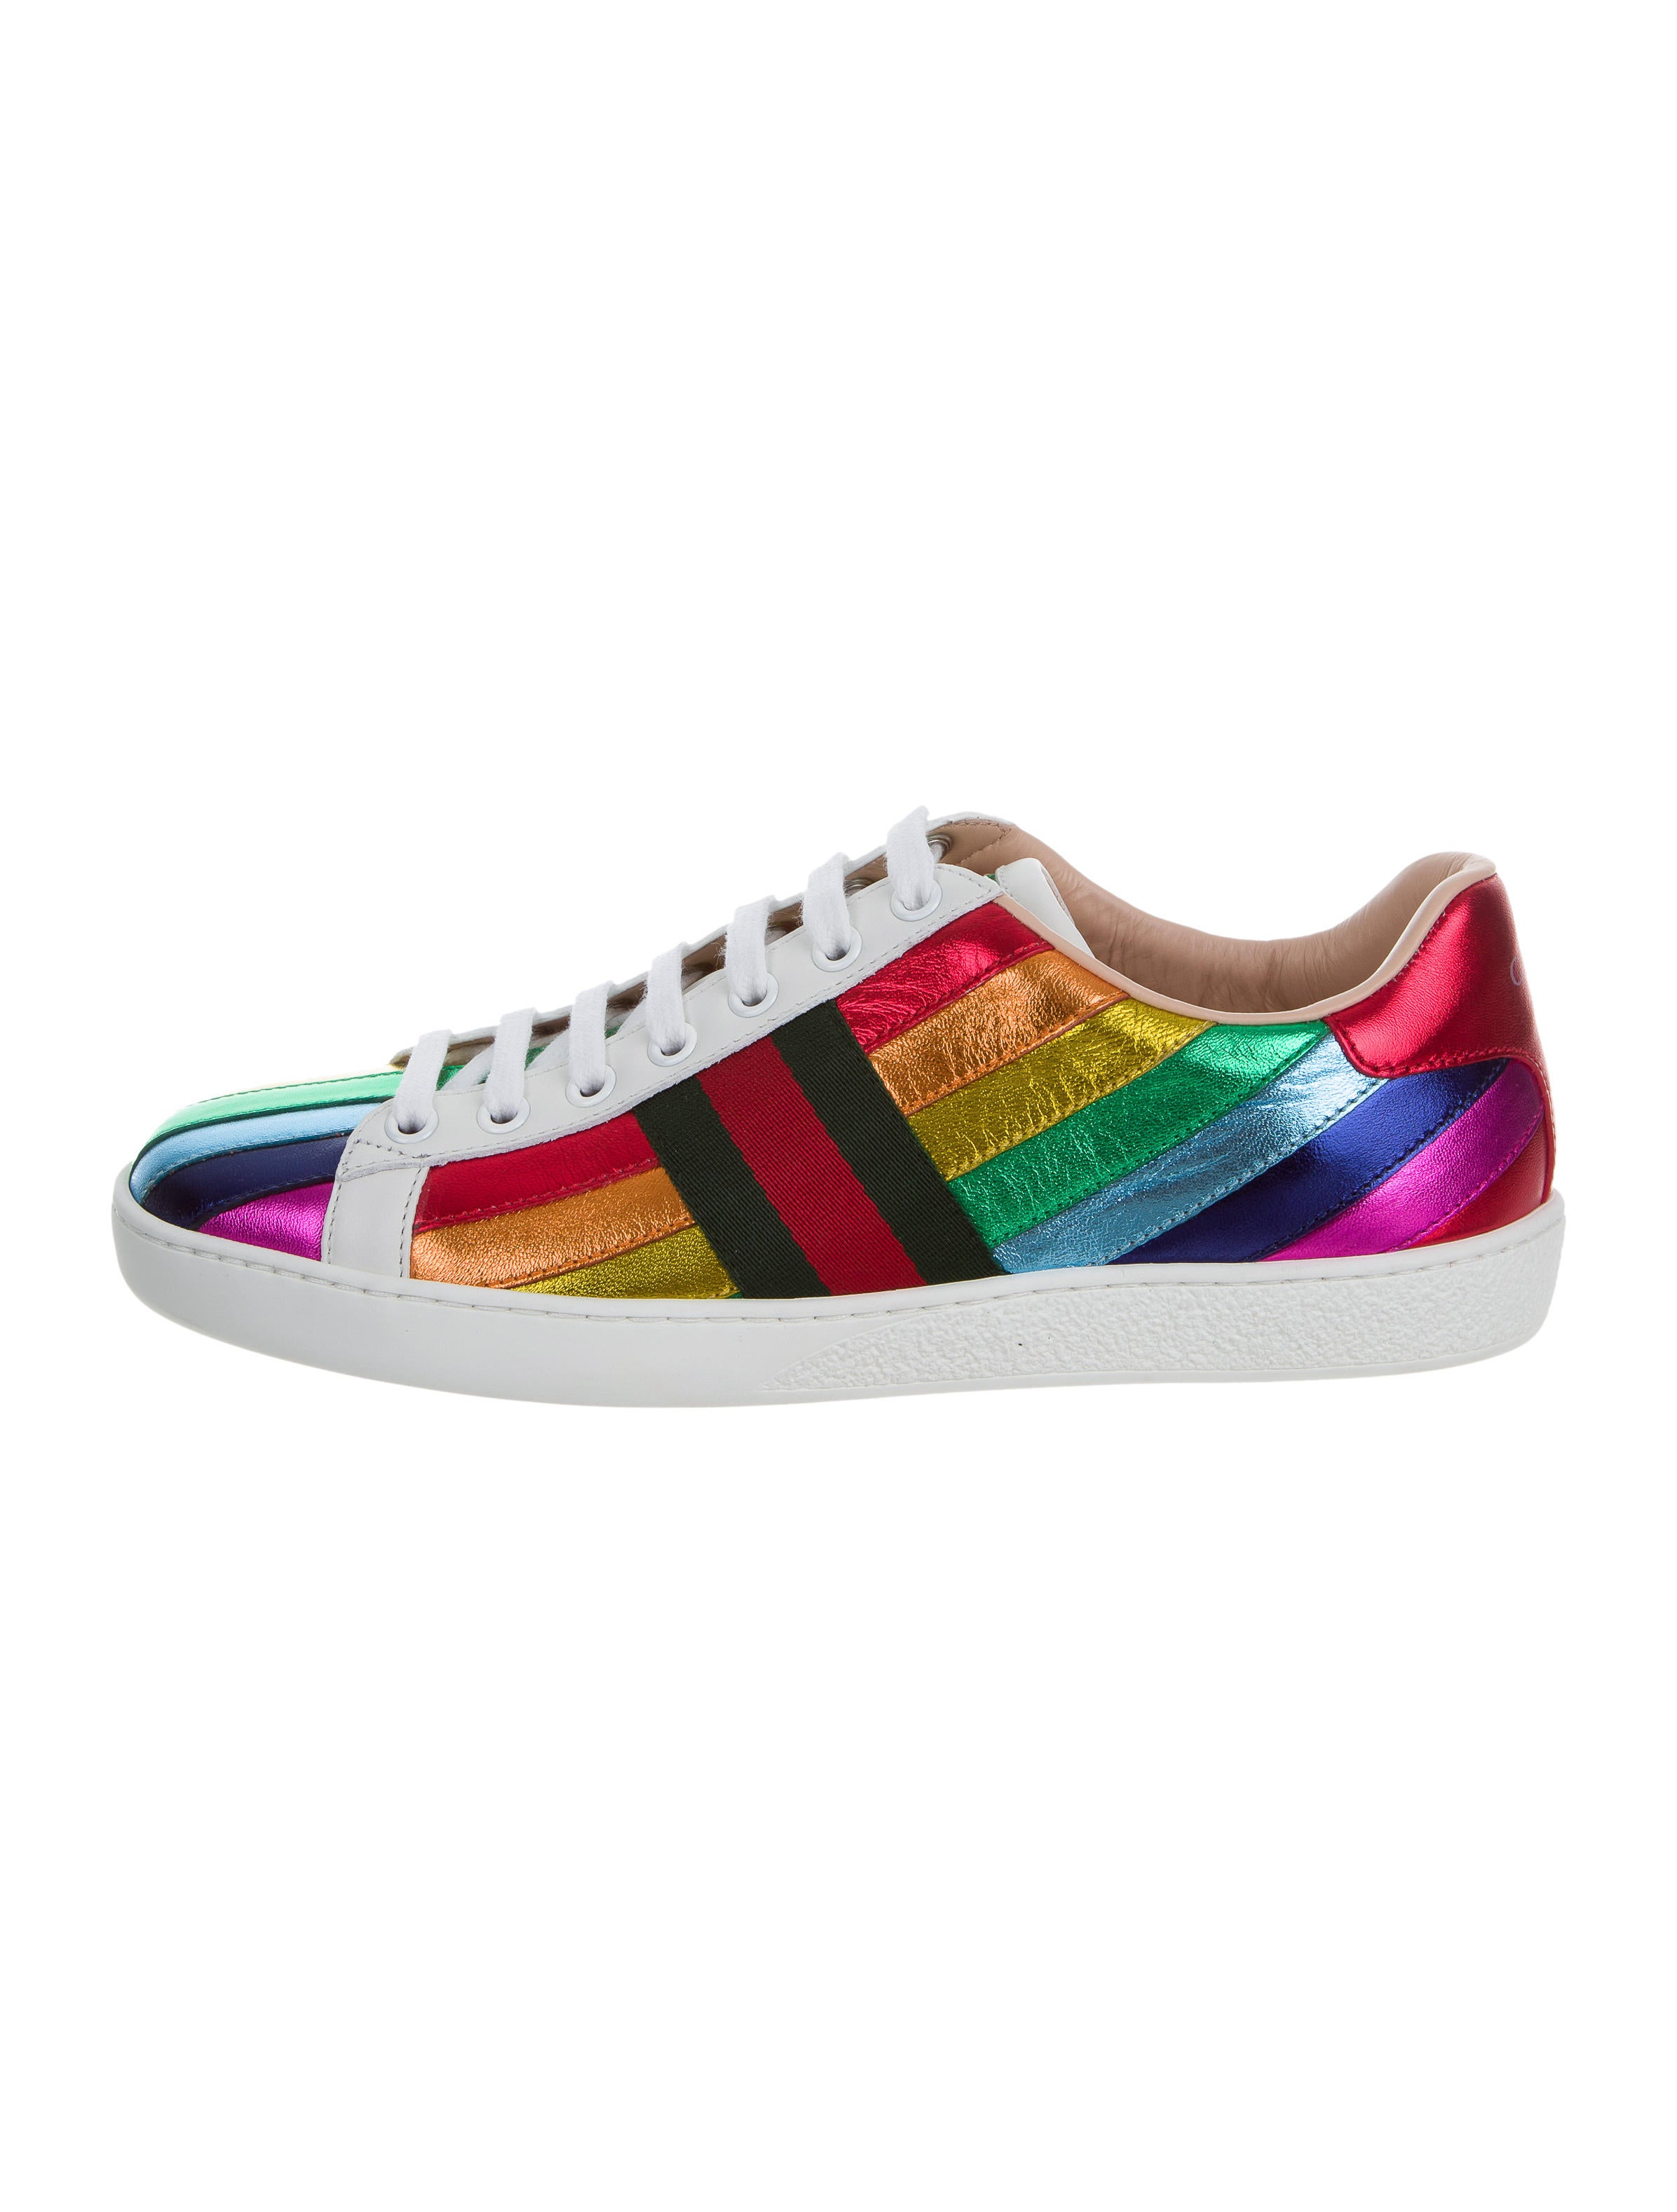 Gucci Ace Rainbow Sneakers w/ Tags